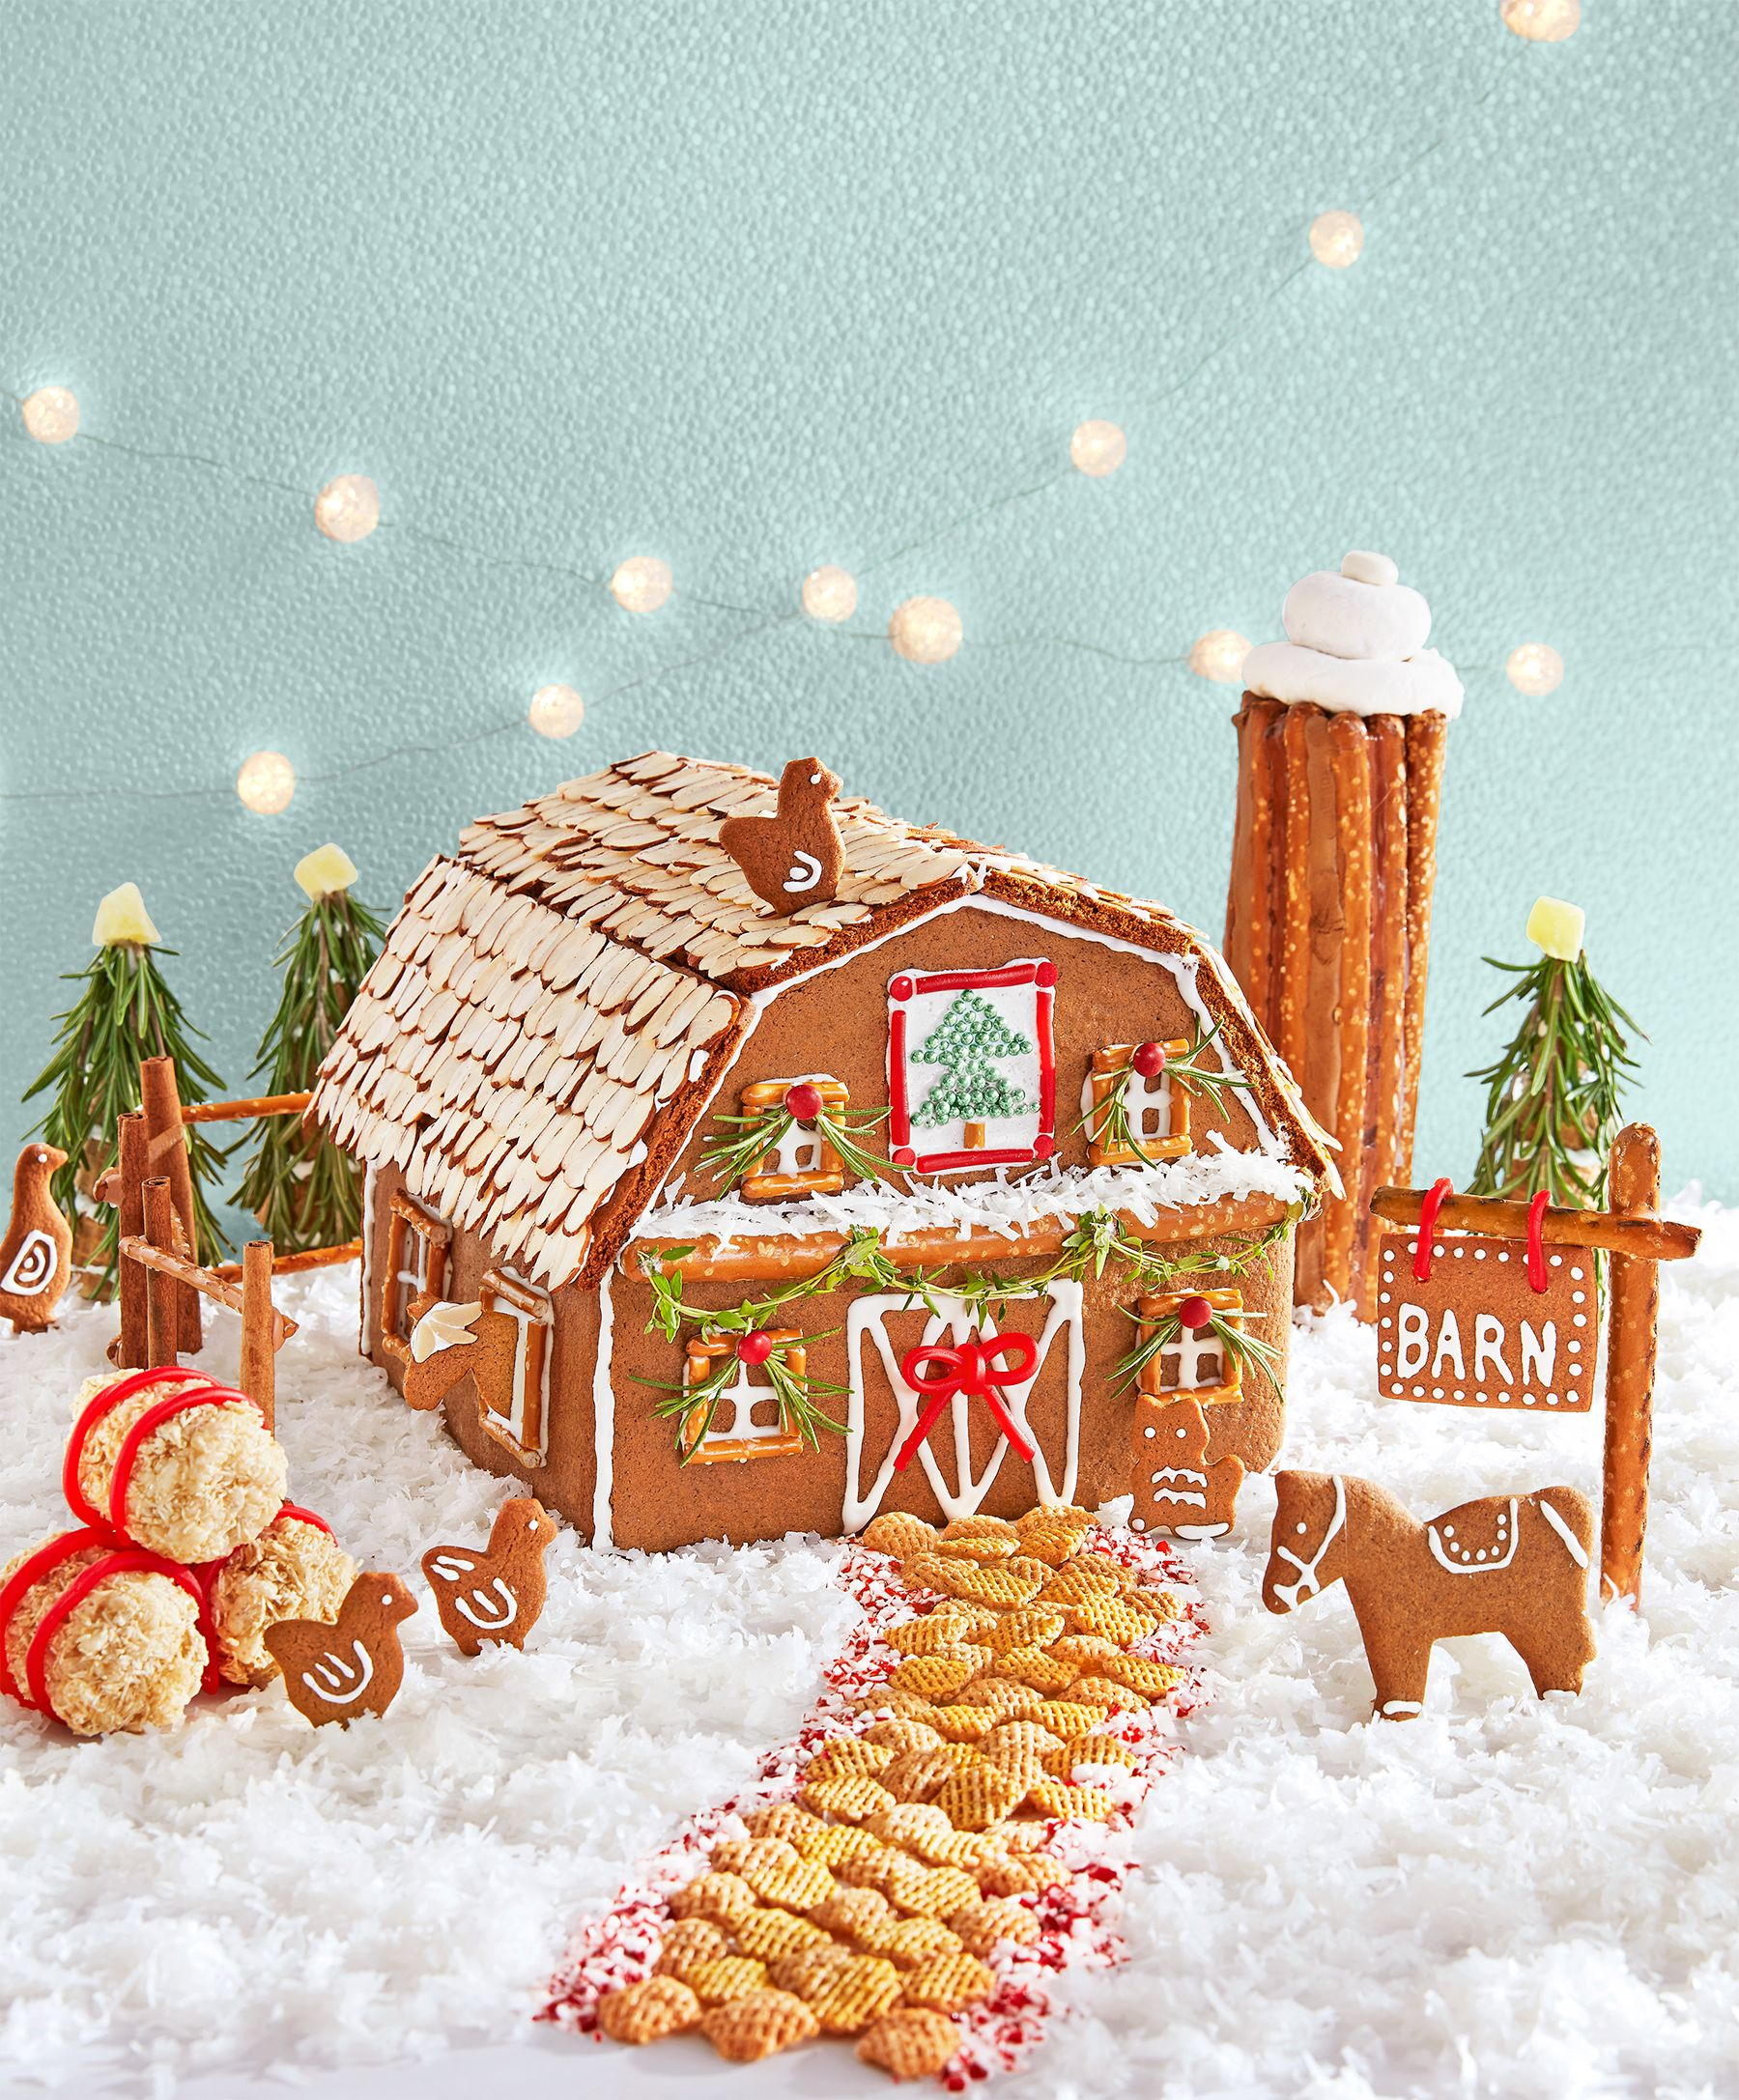 How To Make A Gingerbread Barn For Christmas